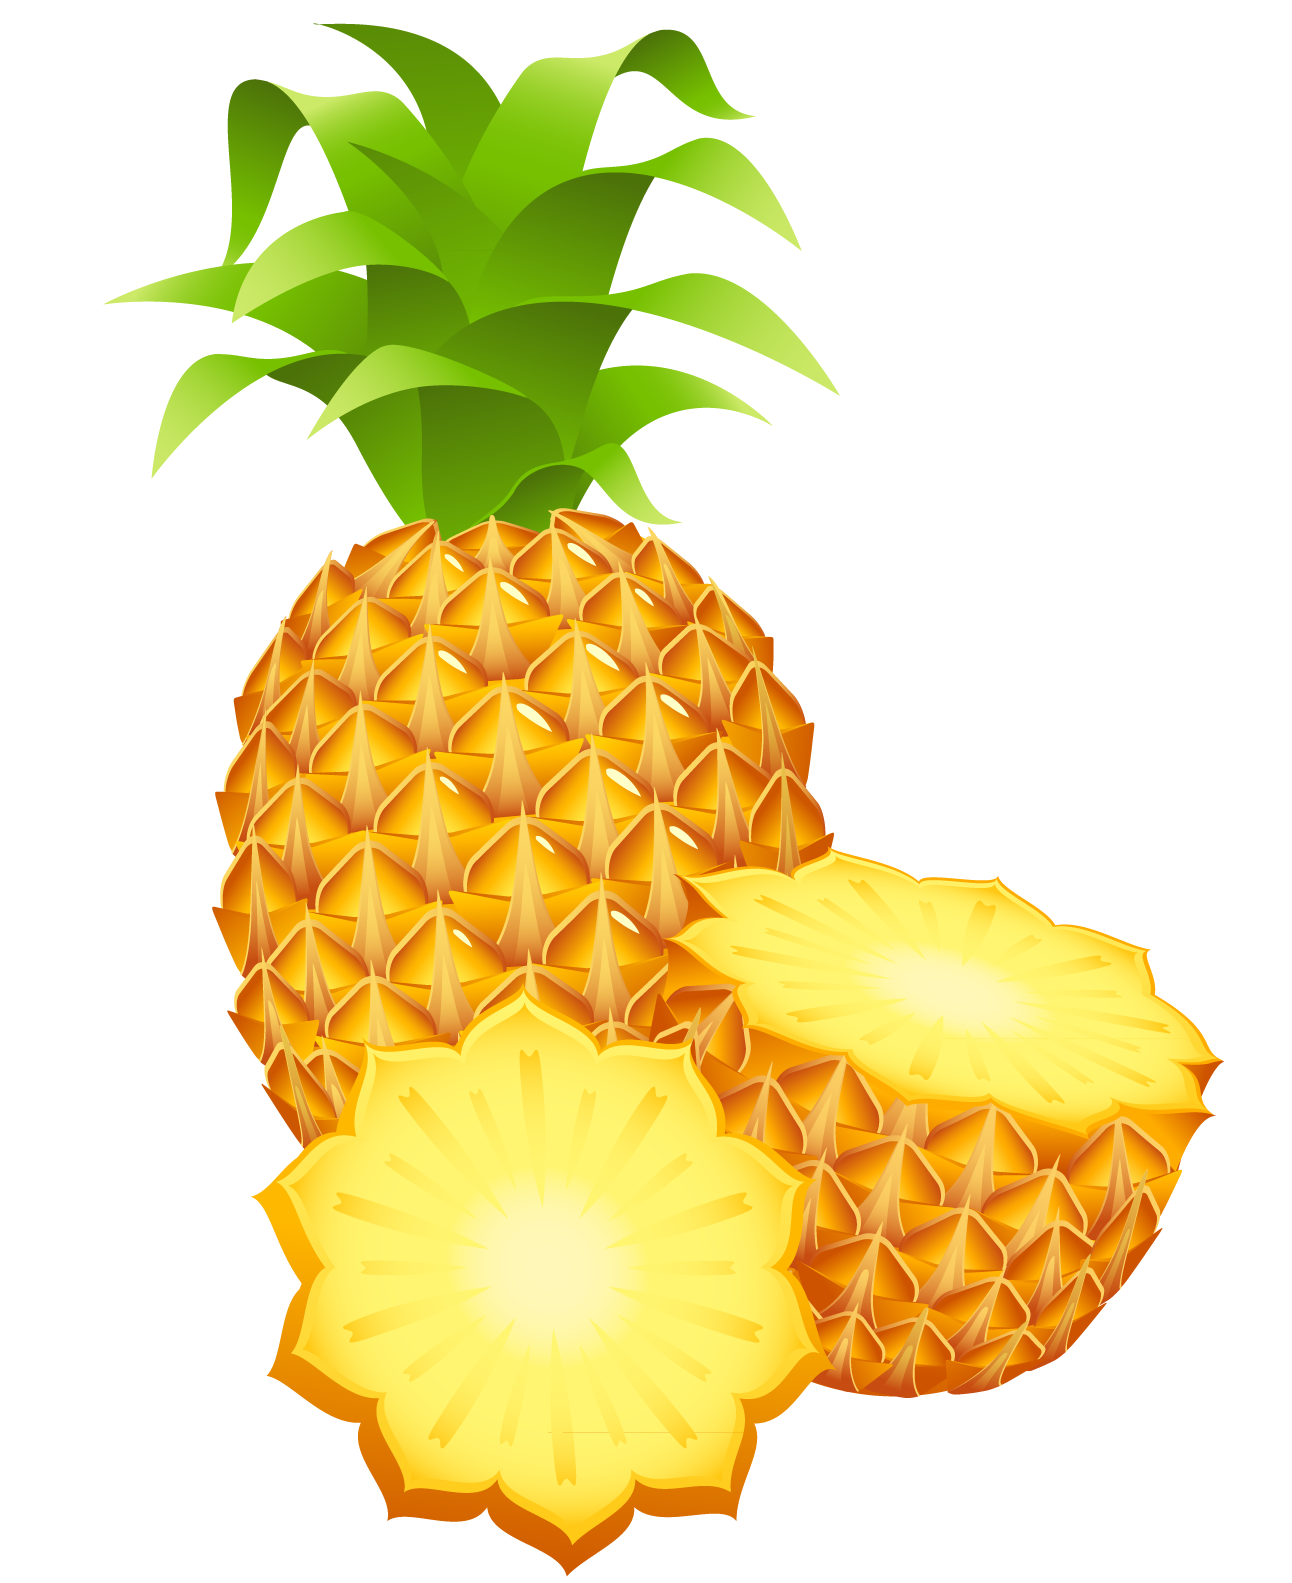 clip art free Large painted pineapple png. Celery clipart watercolor.